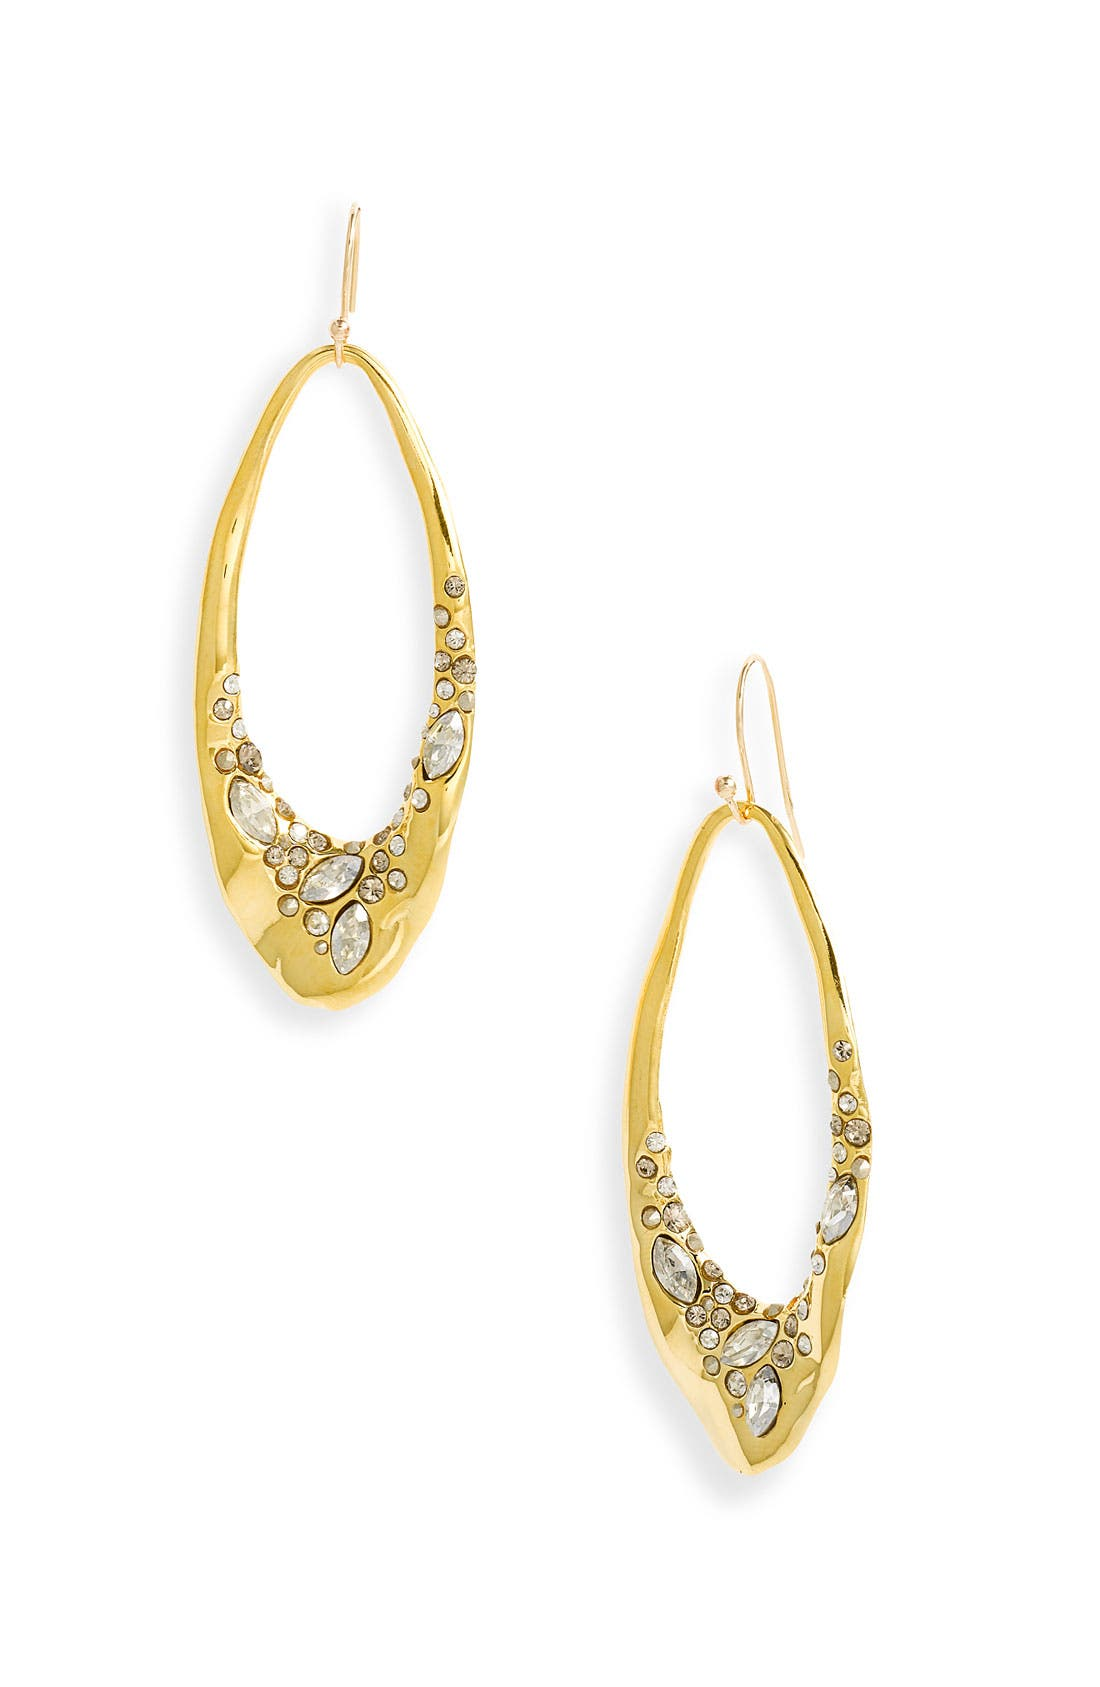 Alternate Image 1 Selected - Alexis Bittar 'Miss Havisham' Encrusted Liquid Link Earrings